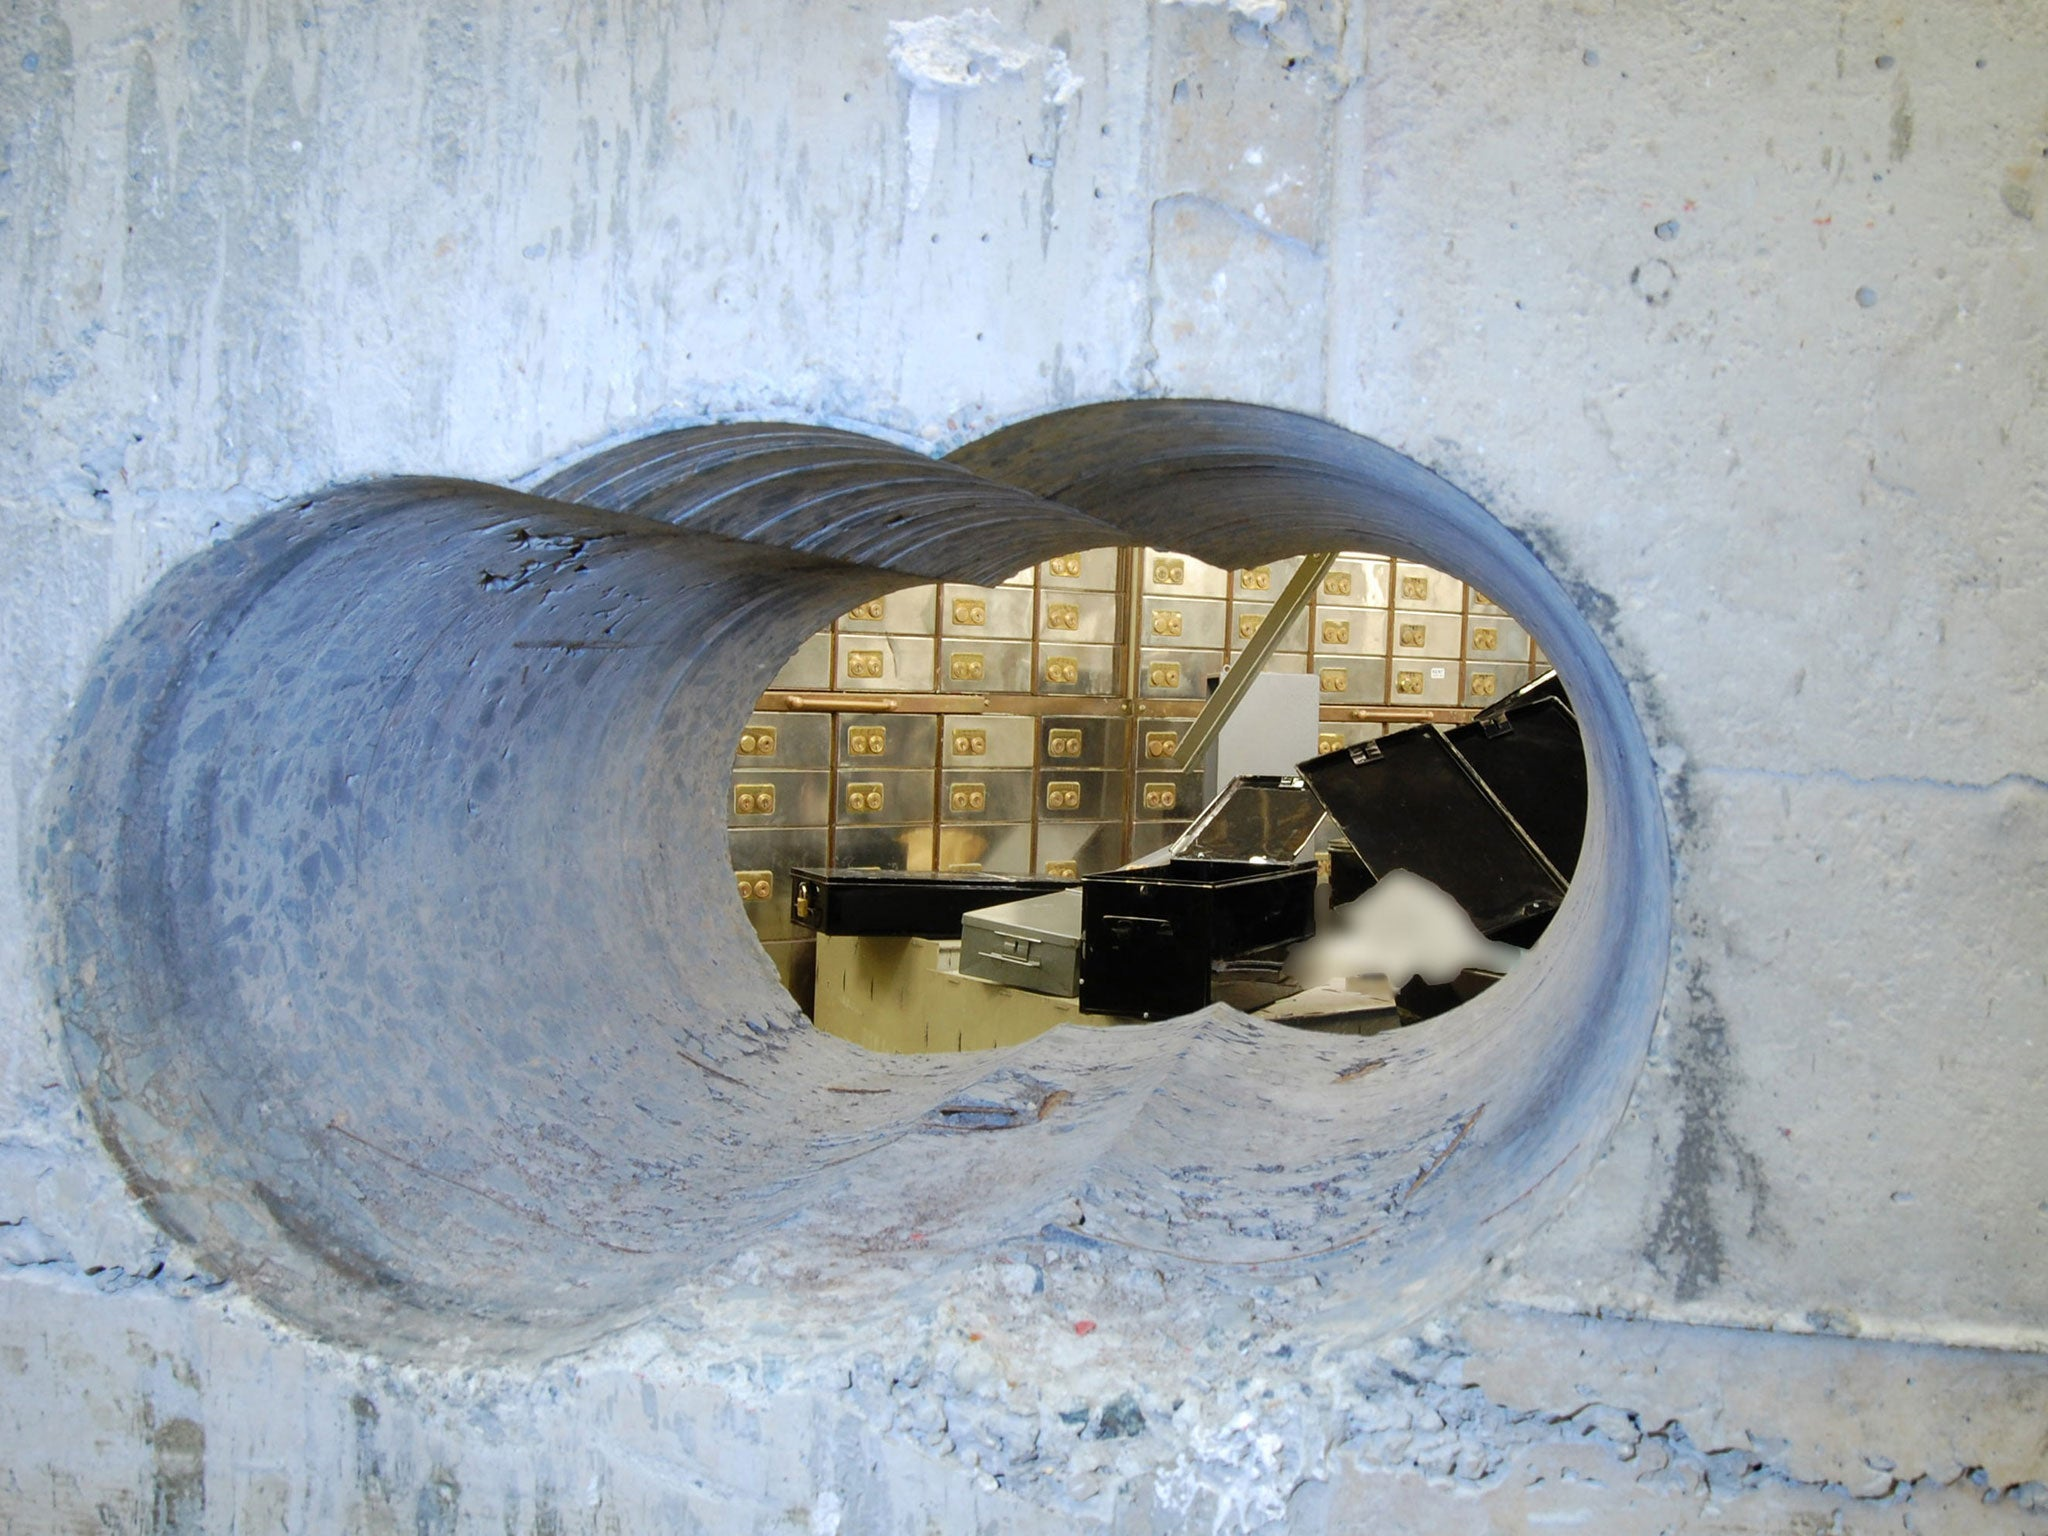 Hatton Garden heist: Suspect known as 'Basil' committed 'strikingly similar' burglary five years earlier, court hears